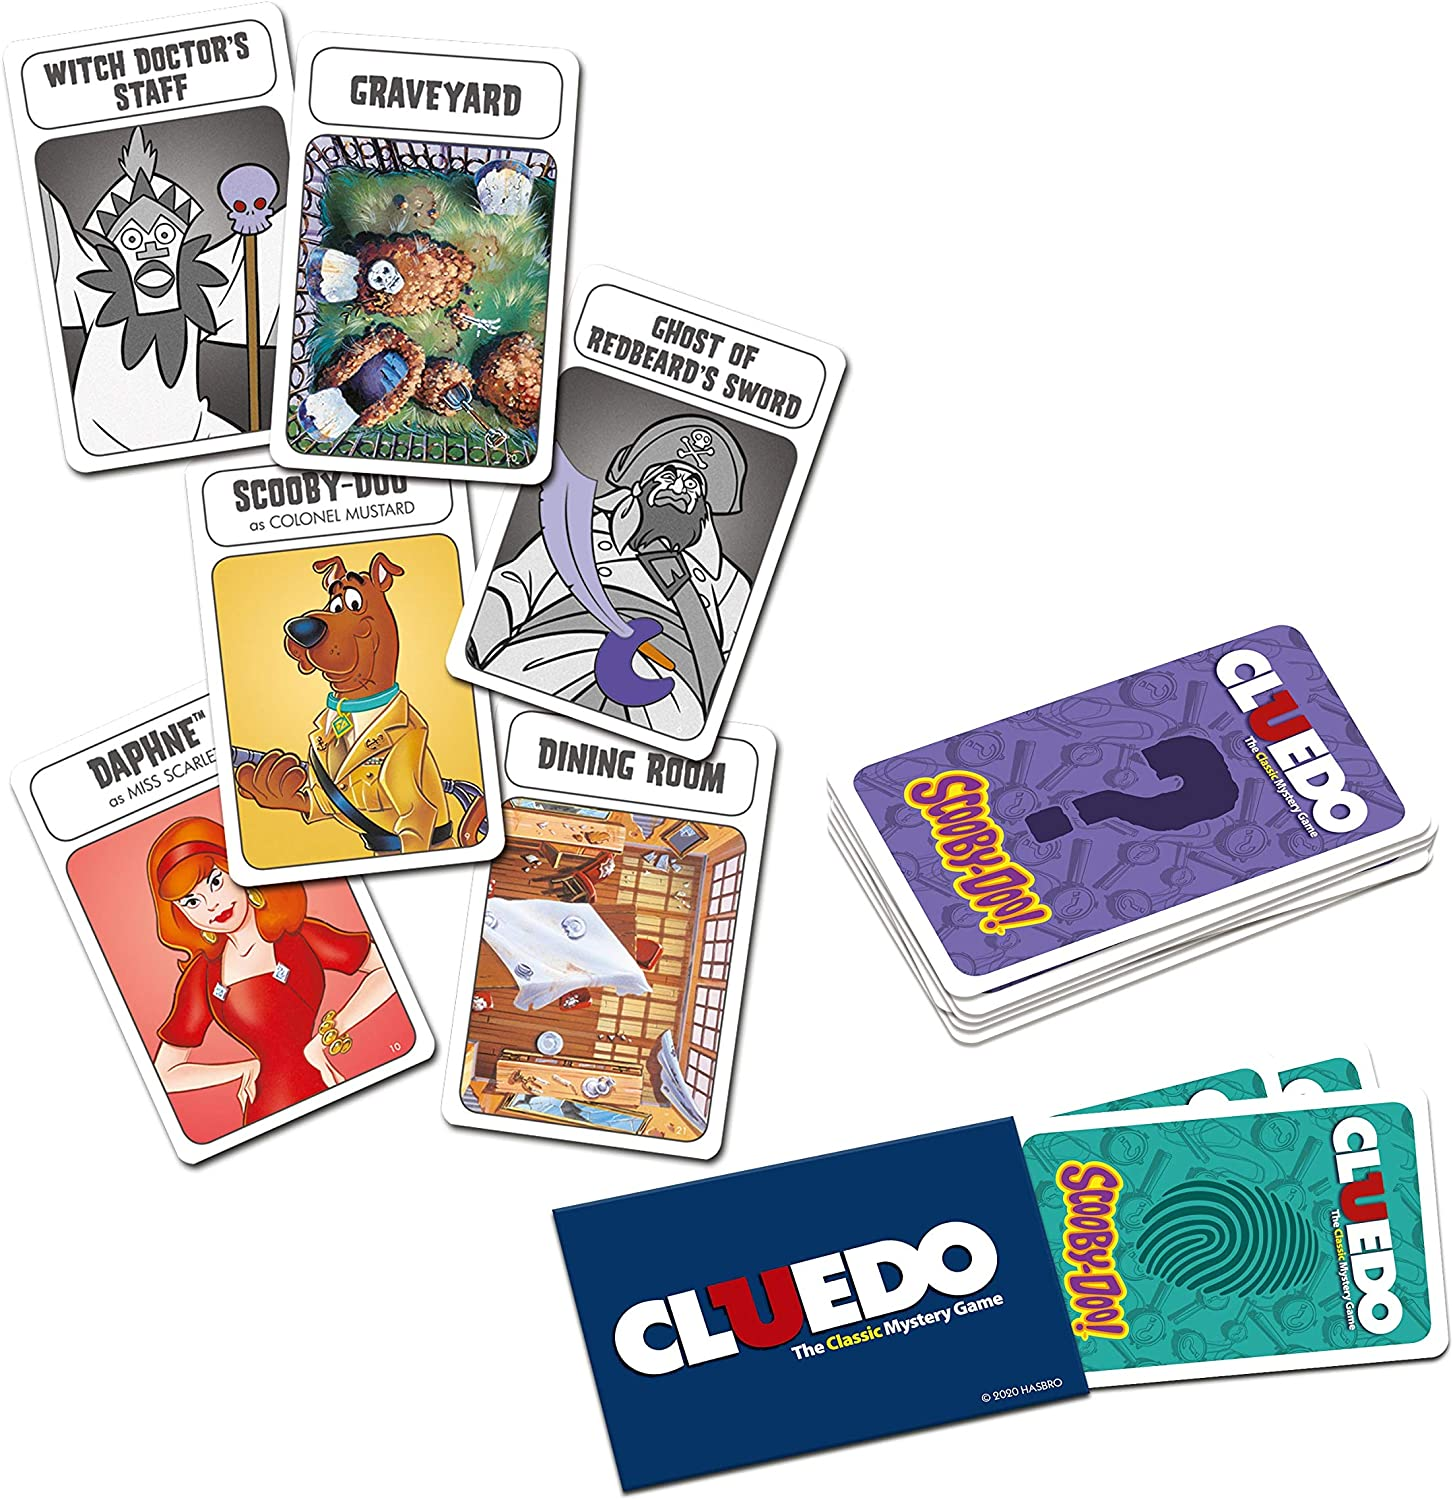 Scooby Doo Cluedo Mystery Latest Edition Board Game